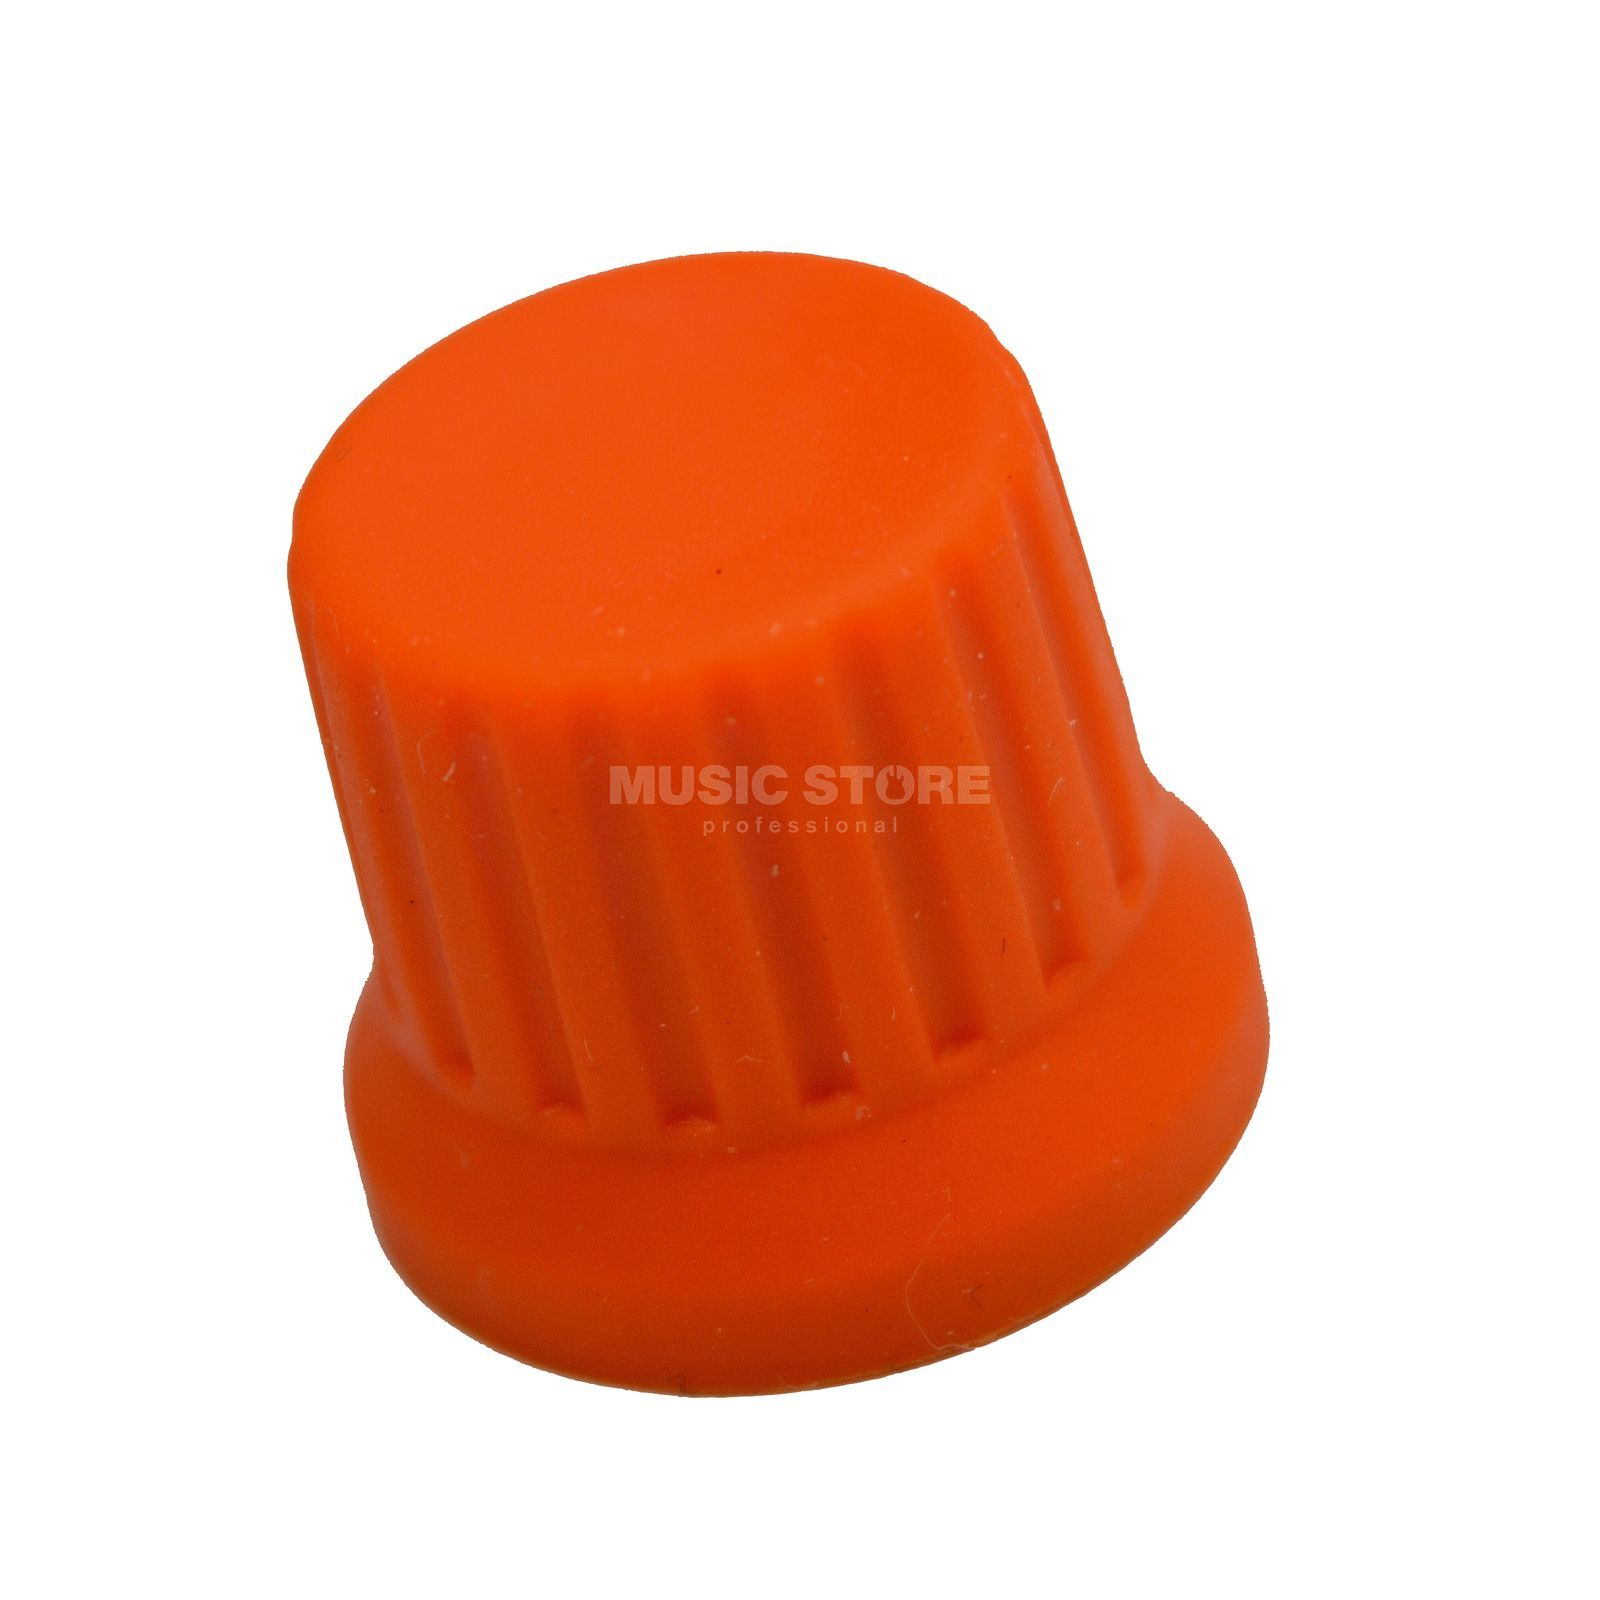 DJ TECHTOOLS Chroma Caps Encoder Knob orange Produktbild